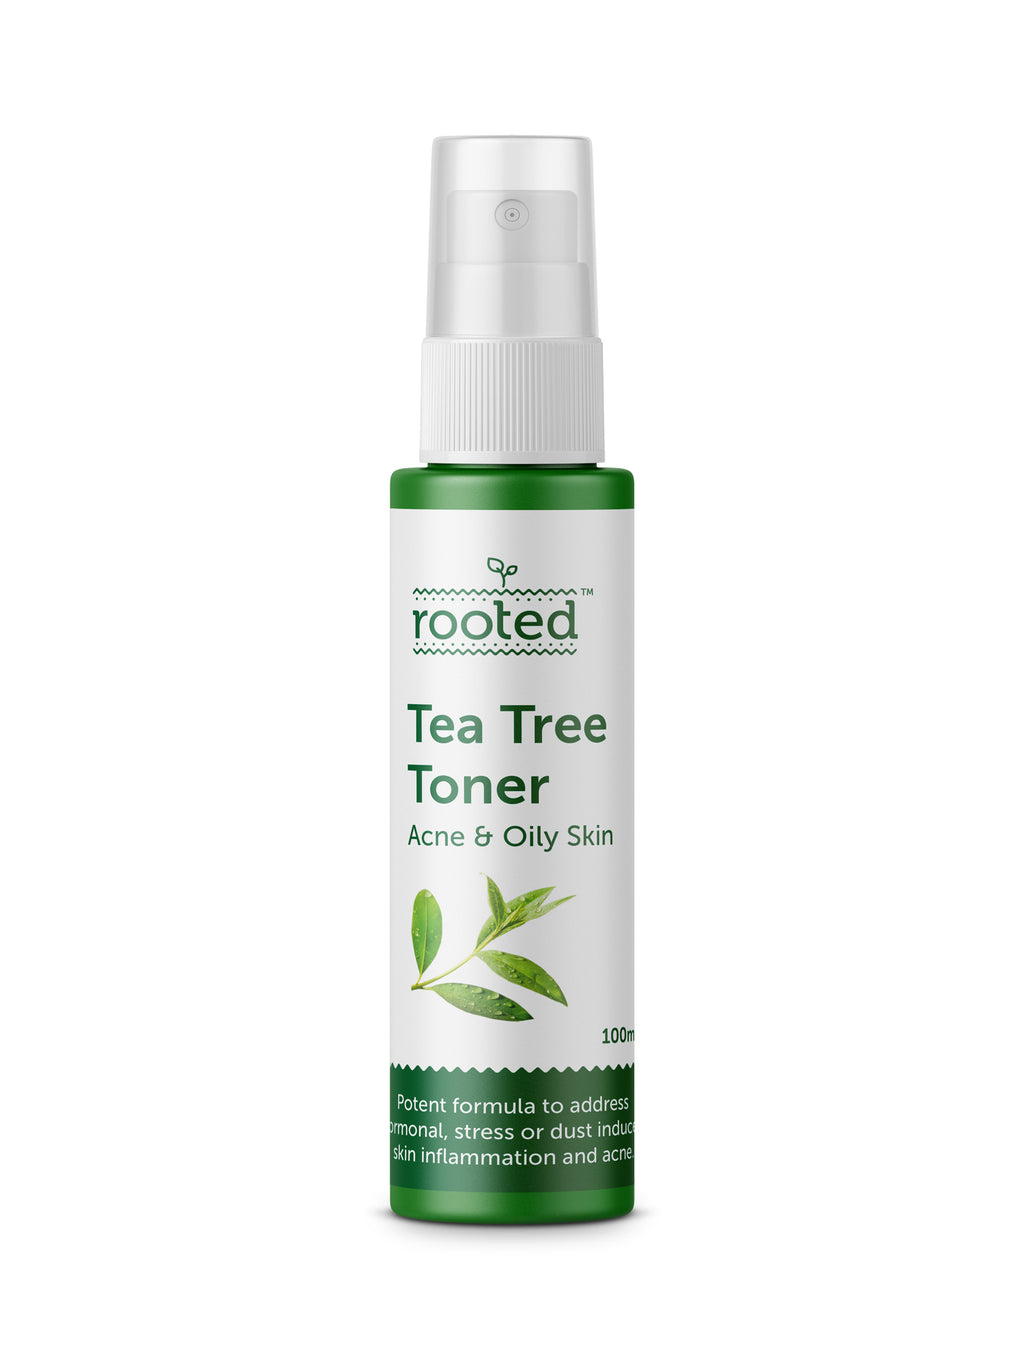 Tea Tree Toner - Banishing Acne & Oily Skin Everyday! - Rooted Organics